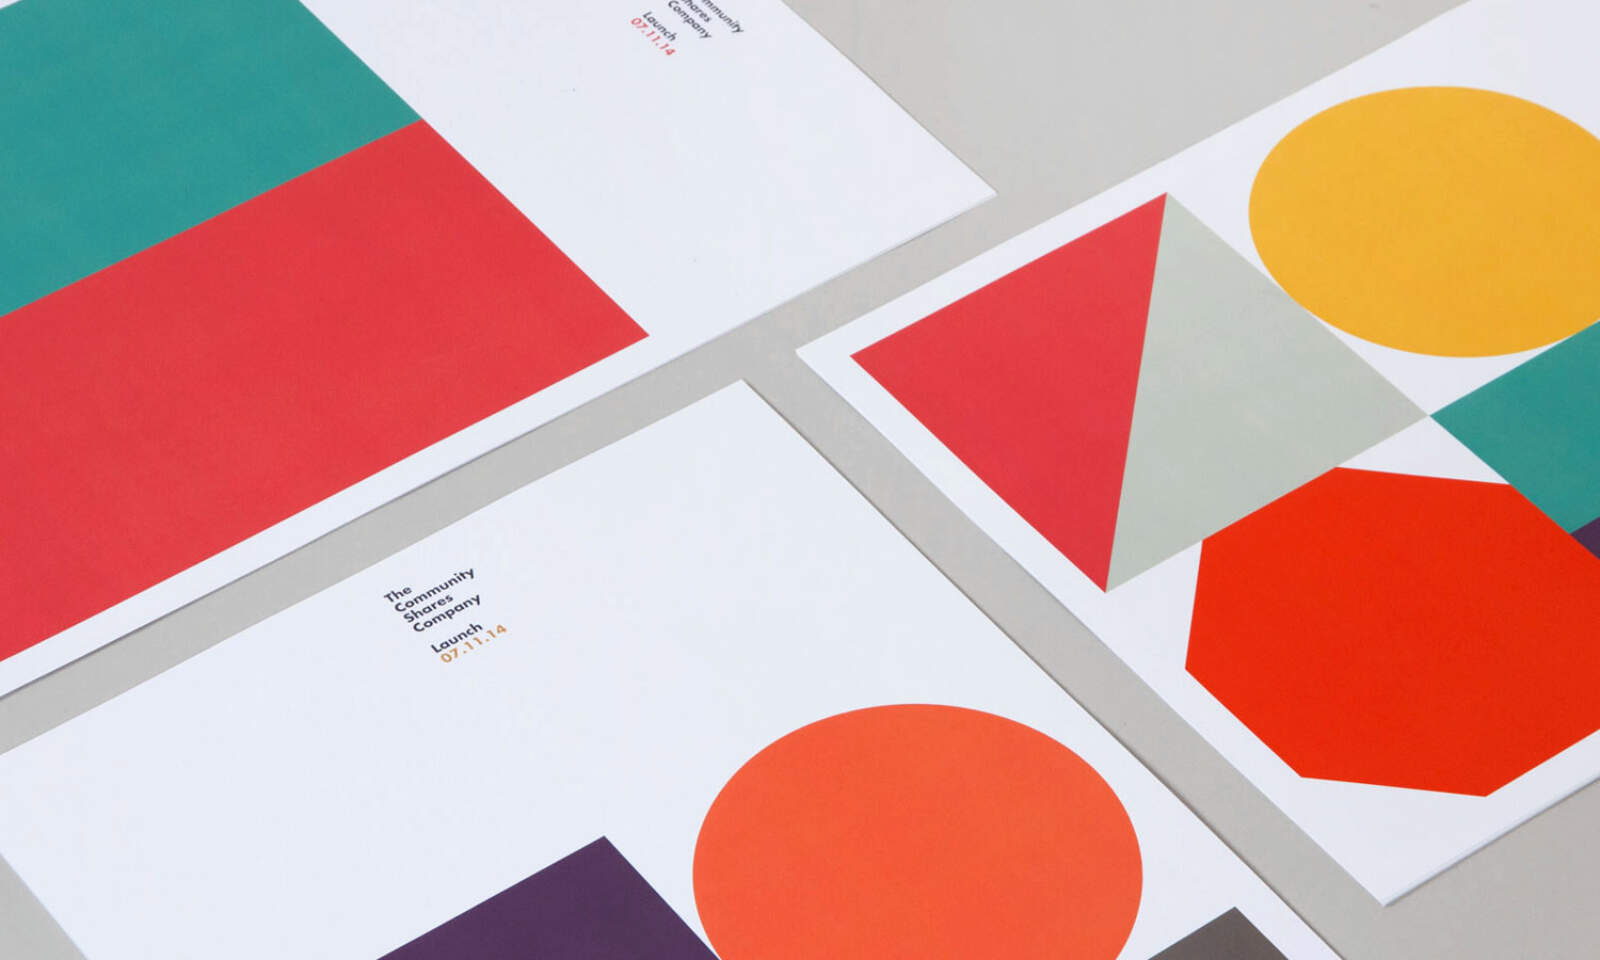 Community Shares geometric branding system, used across printed stationery.